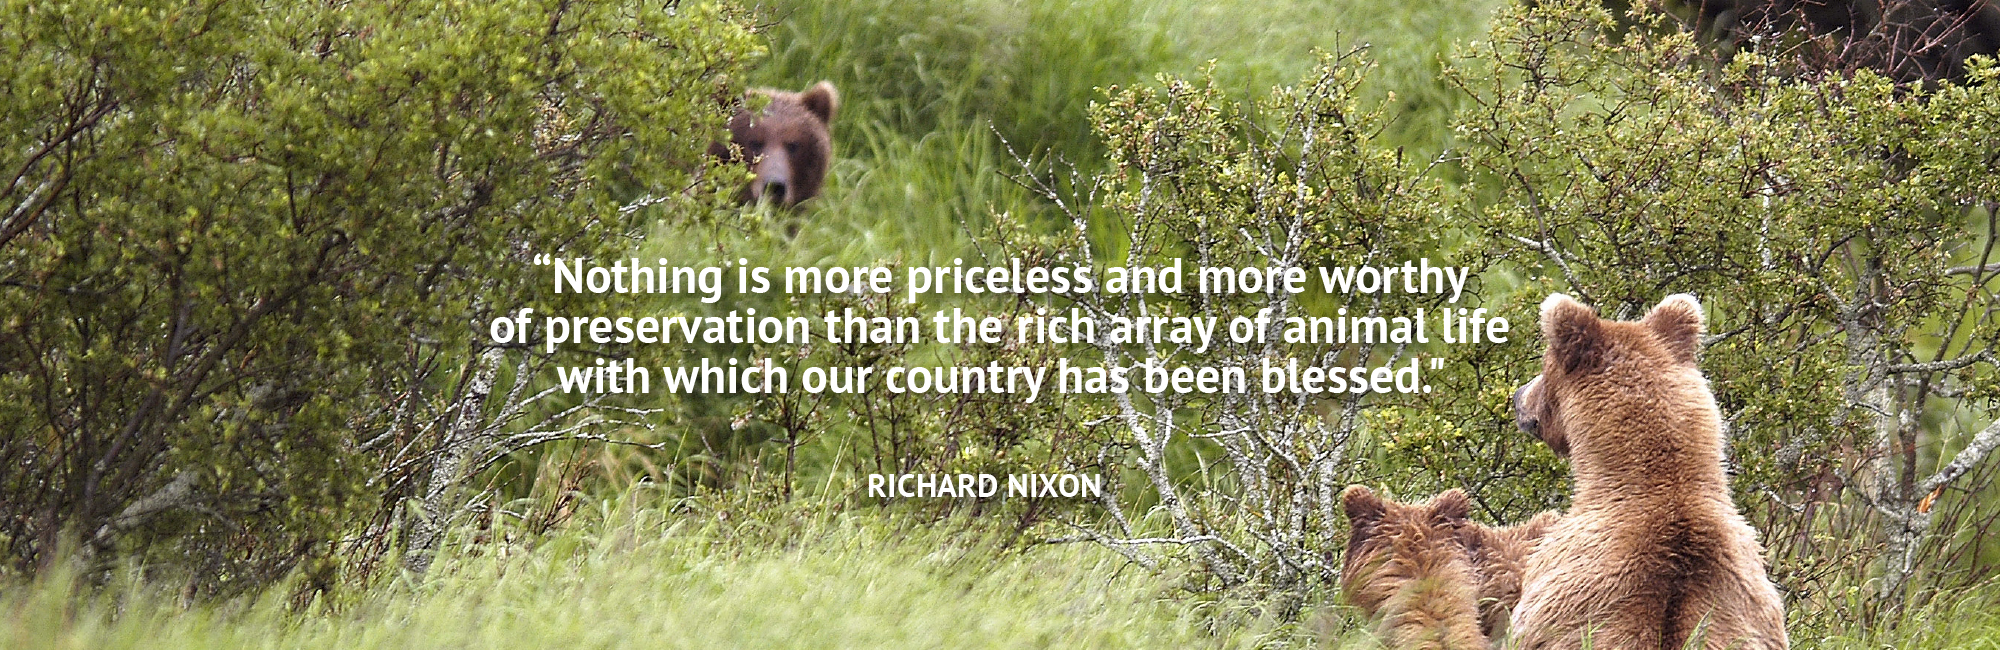 Richard Nixon Quote